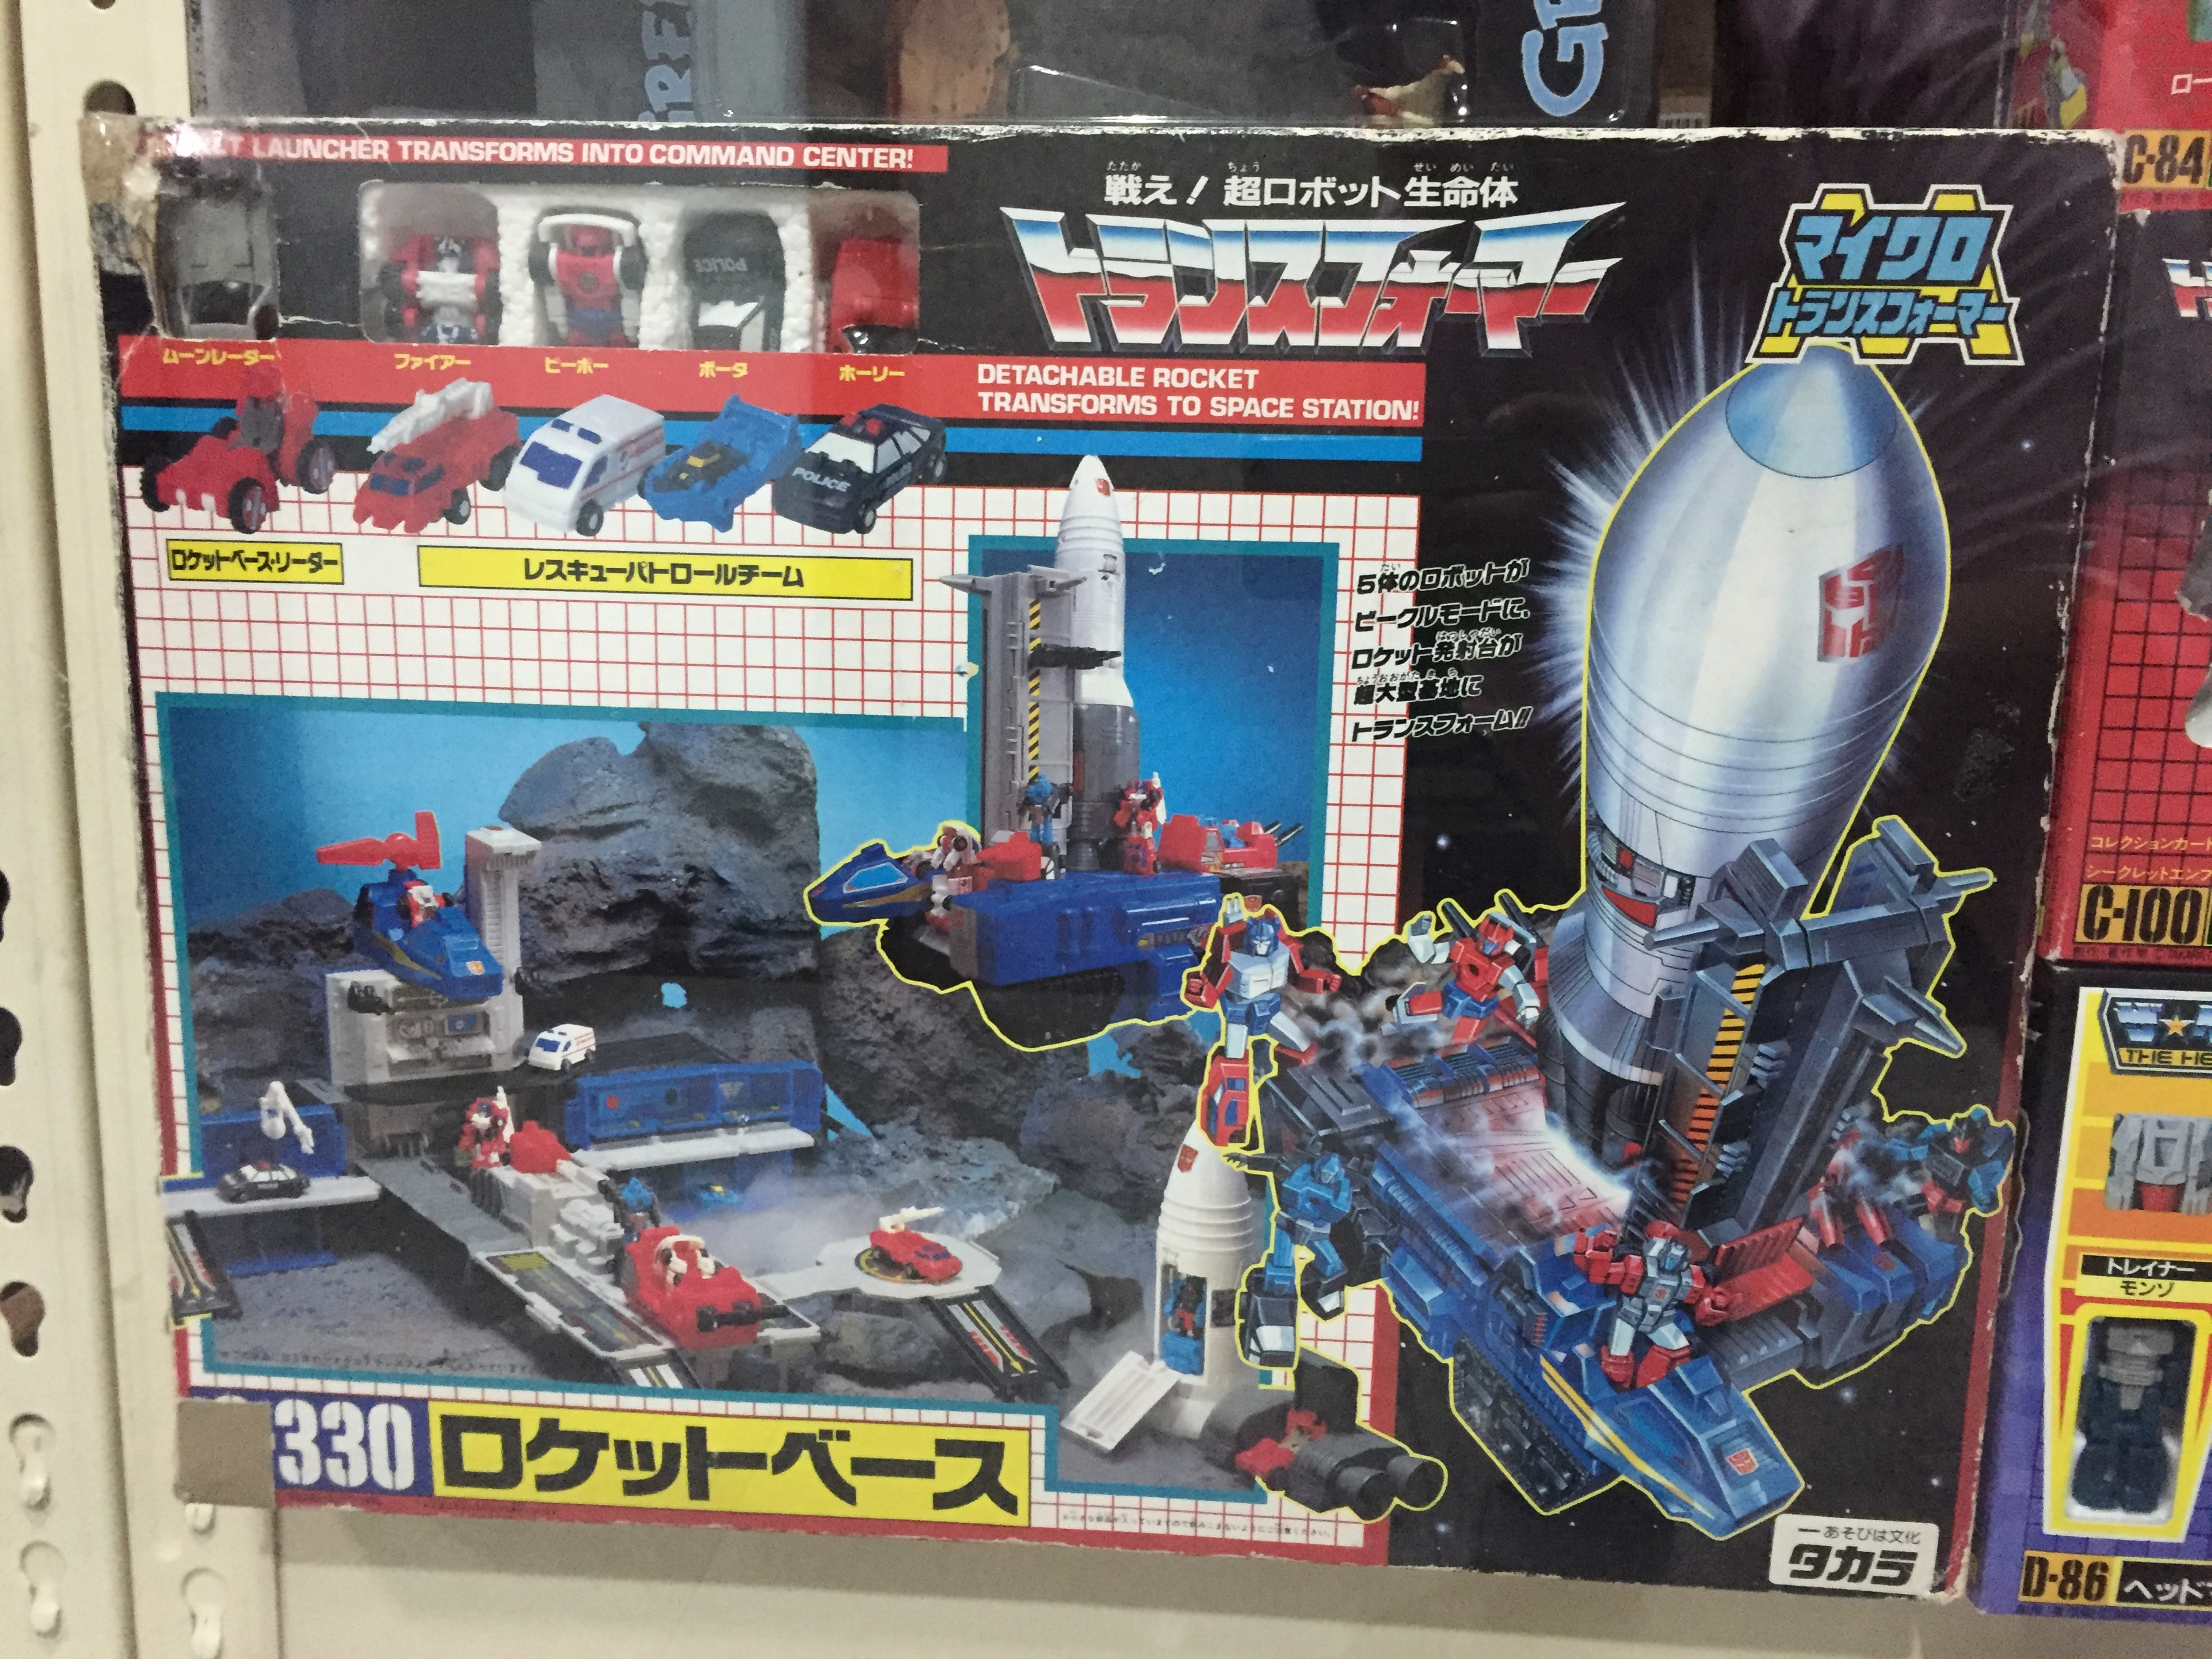 Countdown and the Rocket Base from the Micromasters line at Robo Robo.